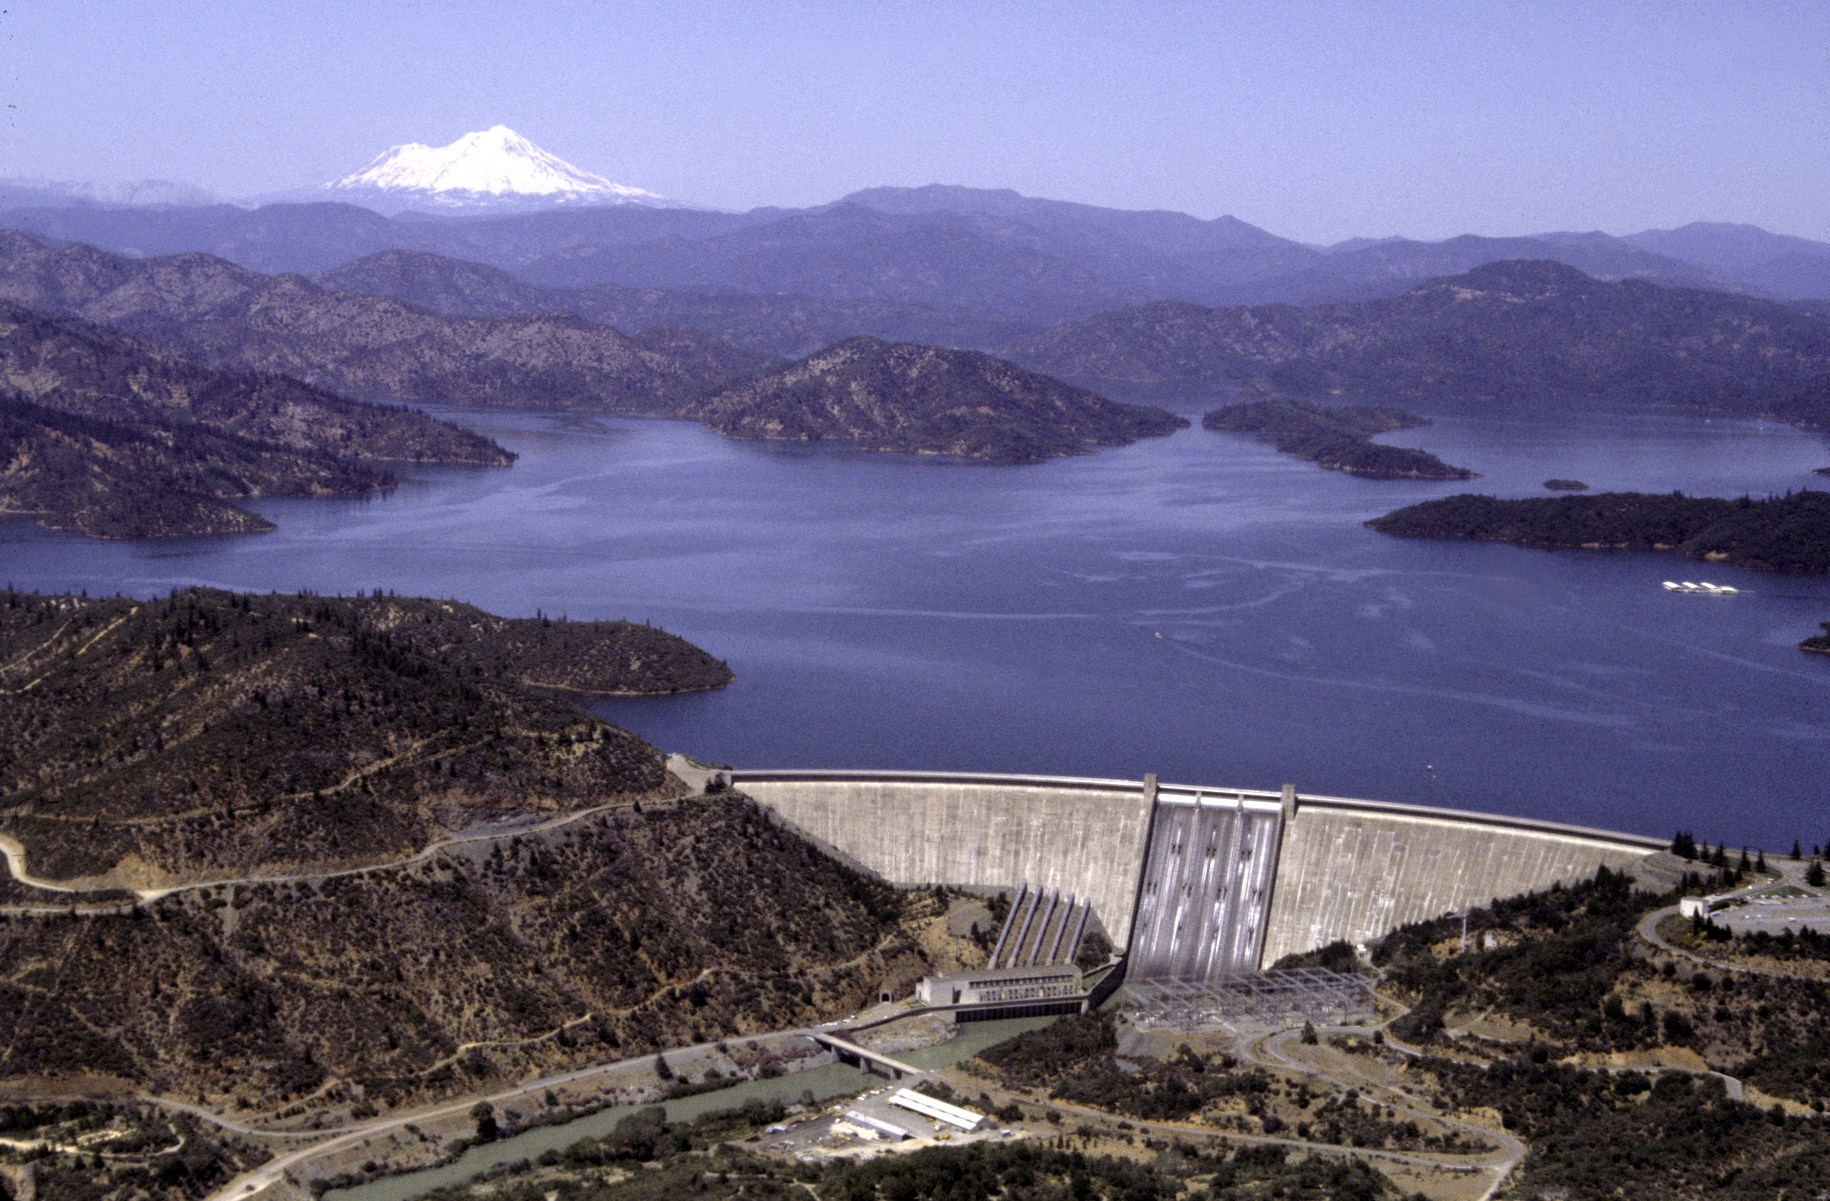 Shasta Dam is one of California's largest generators of hydroelectric power. Photo via Bureau of Reclamation